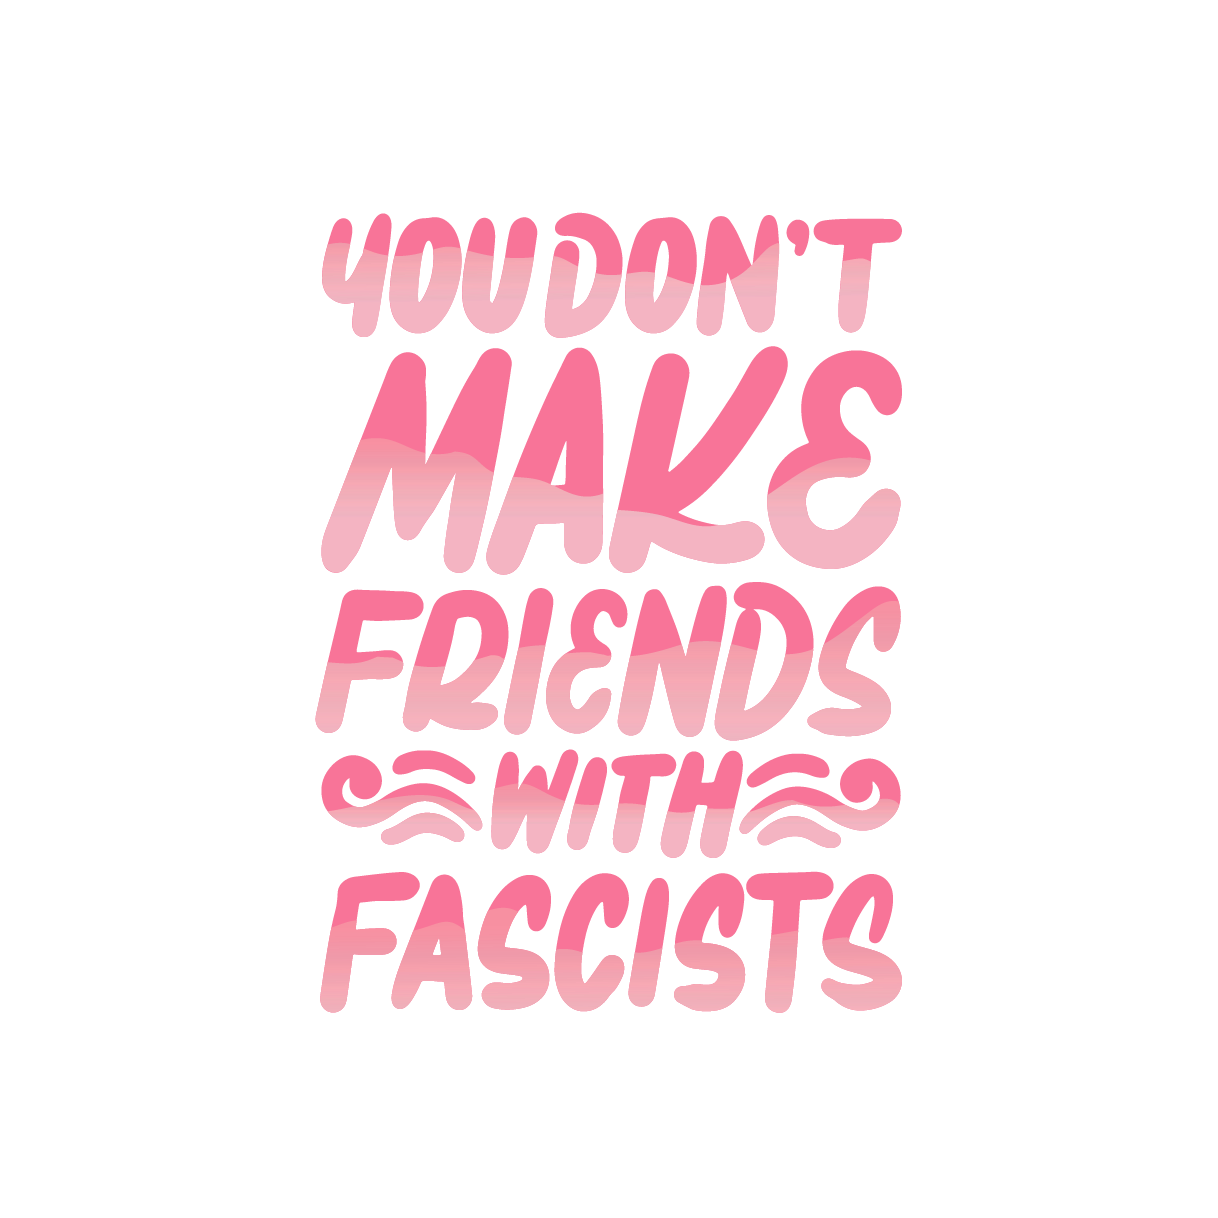 facsist-revised-instag-10.png